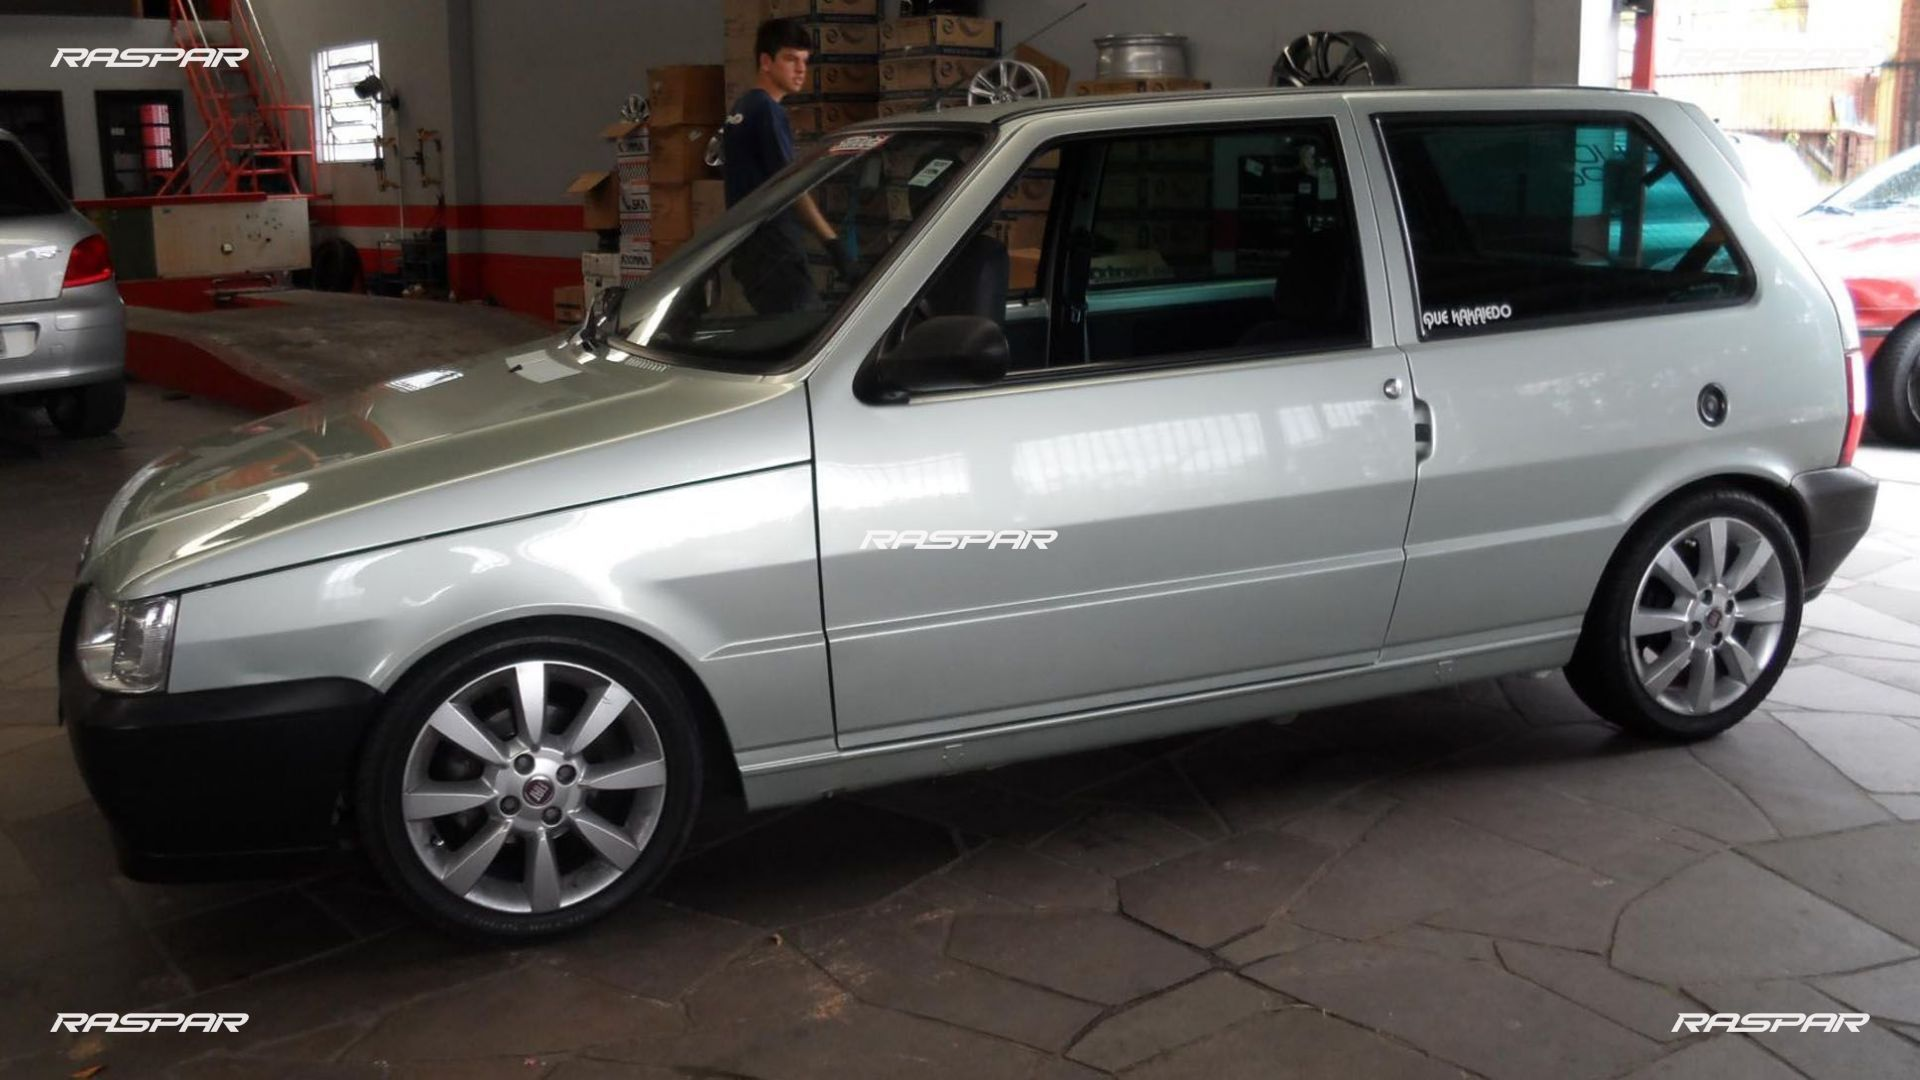 Uno   Rodas Aro 15 on fiat palio 2000